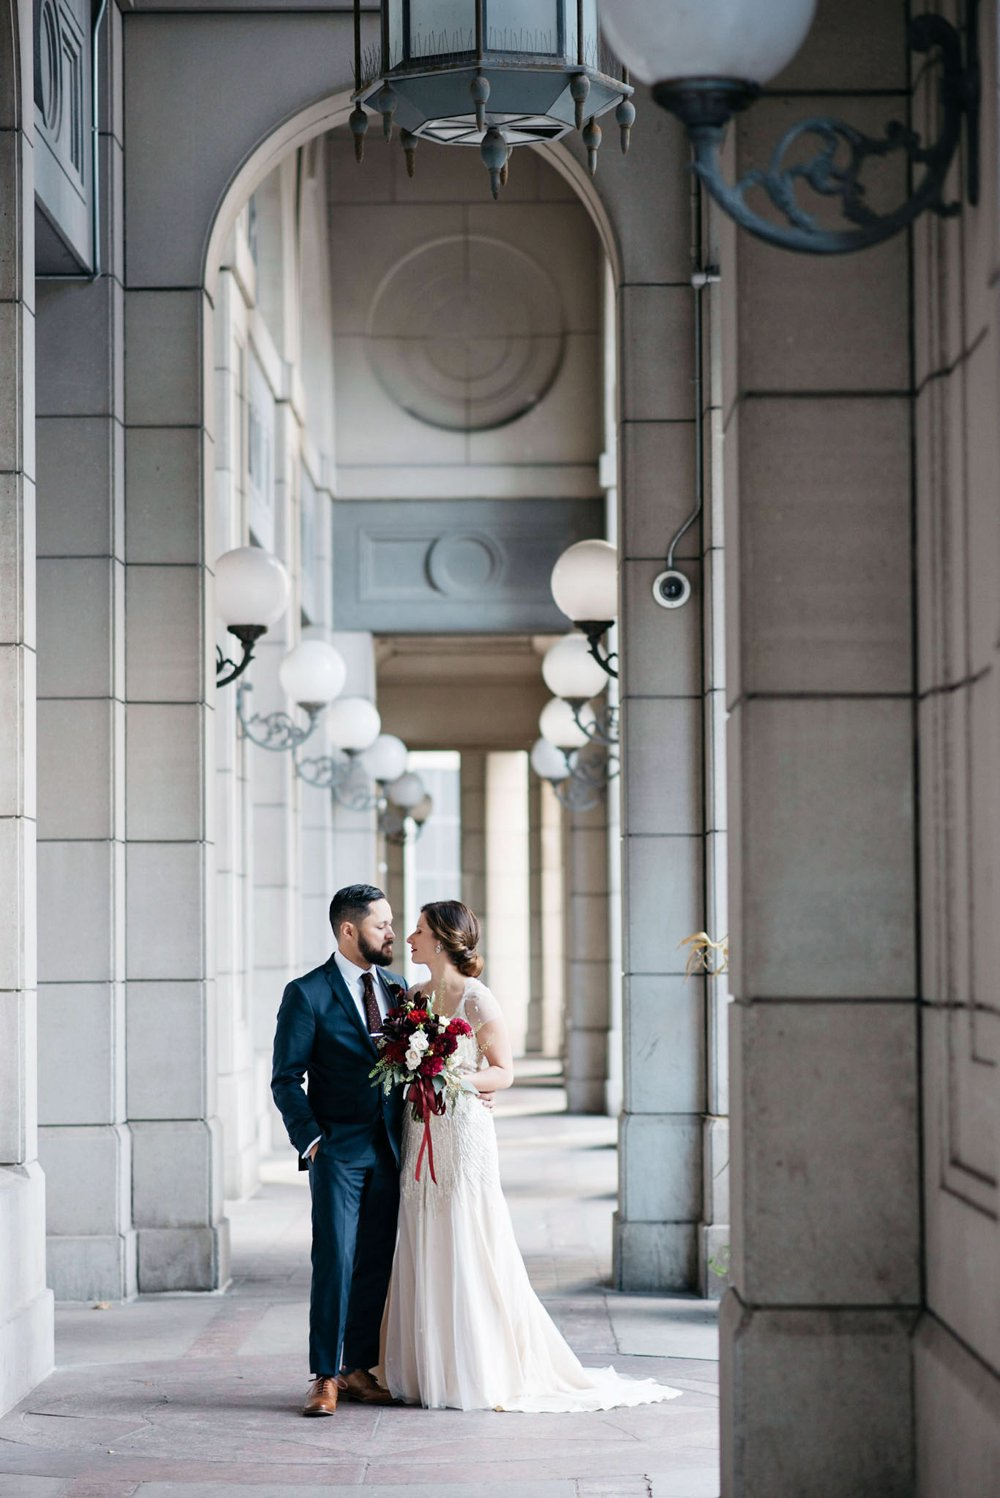 Toronto Wedding Photography | Olive Photography